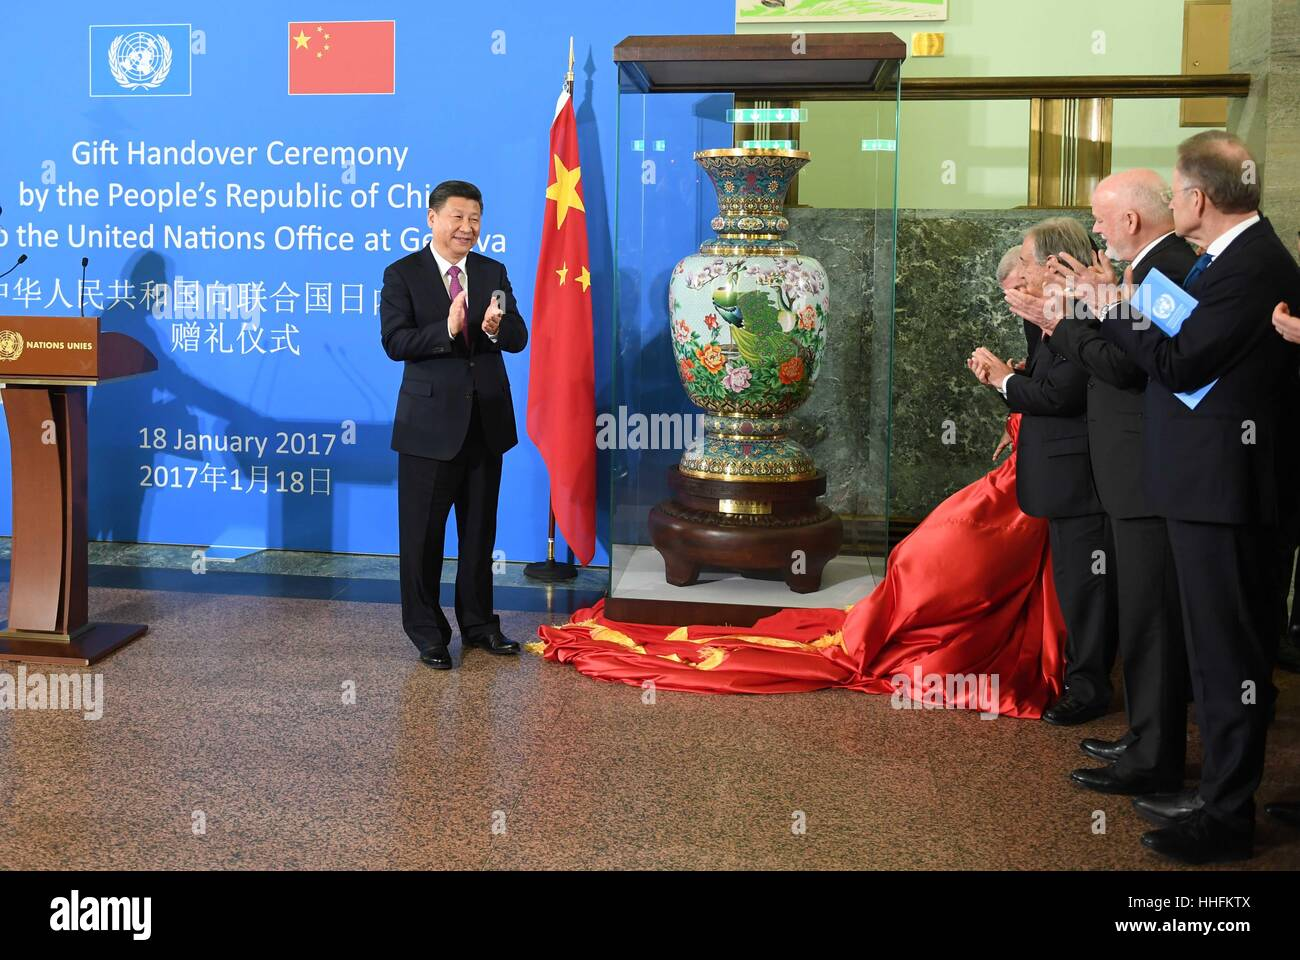 (170118) -- GENEVA, Jan. 18, 2017 (Xinhua) -- Chinese President Xi Jinping (L) attends a gift handover ceremony - Stock Image